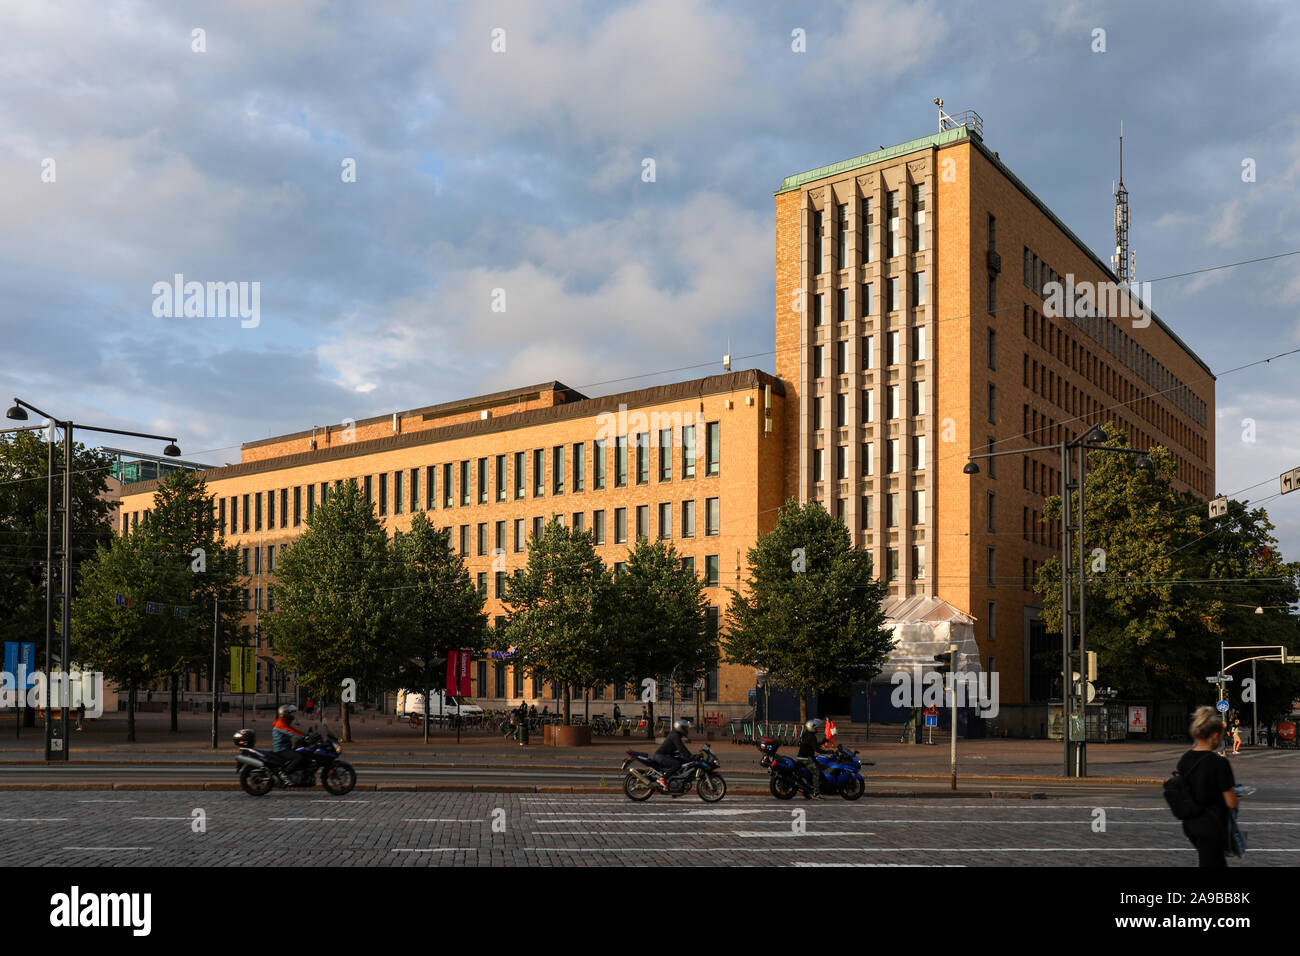 Postitalo, the former headquarters of Postal and Telecommunications Department, in Helsinki, Finland Stock Photo